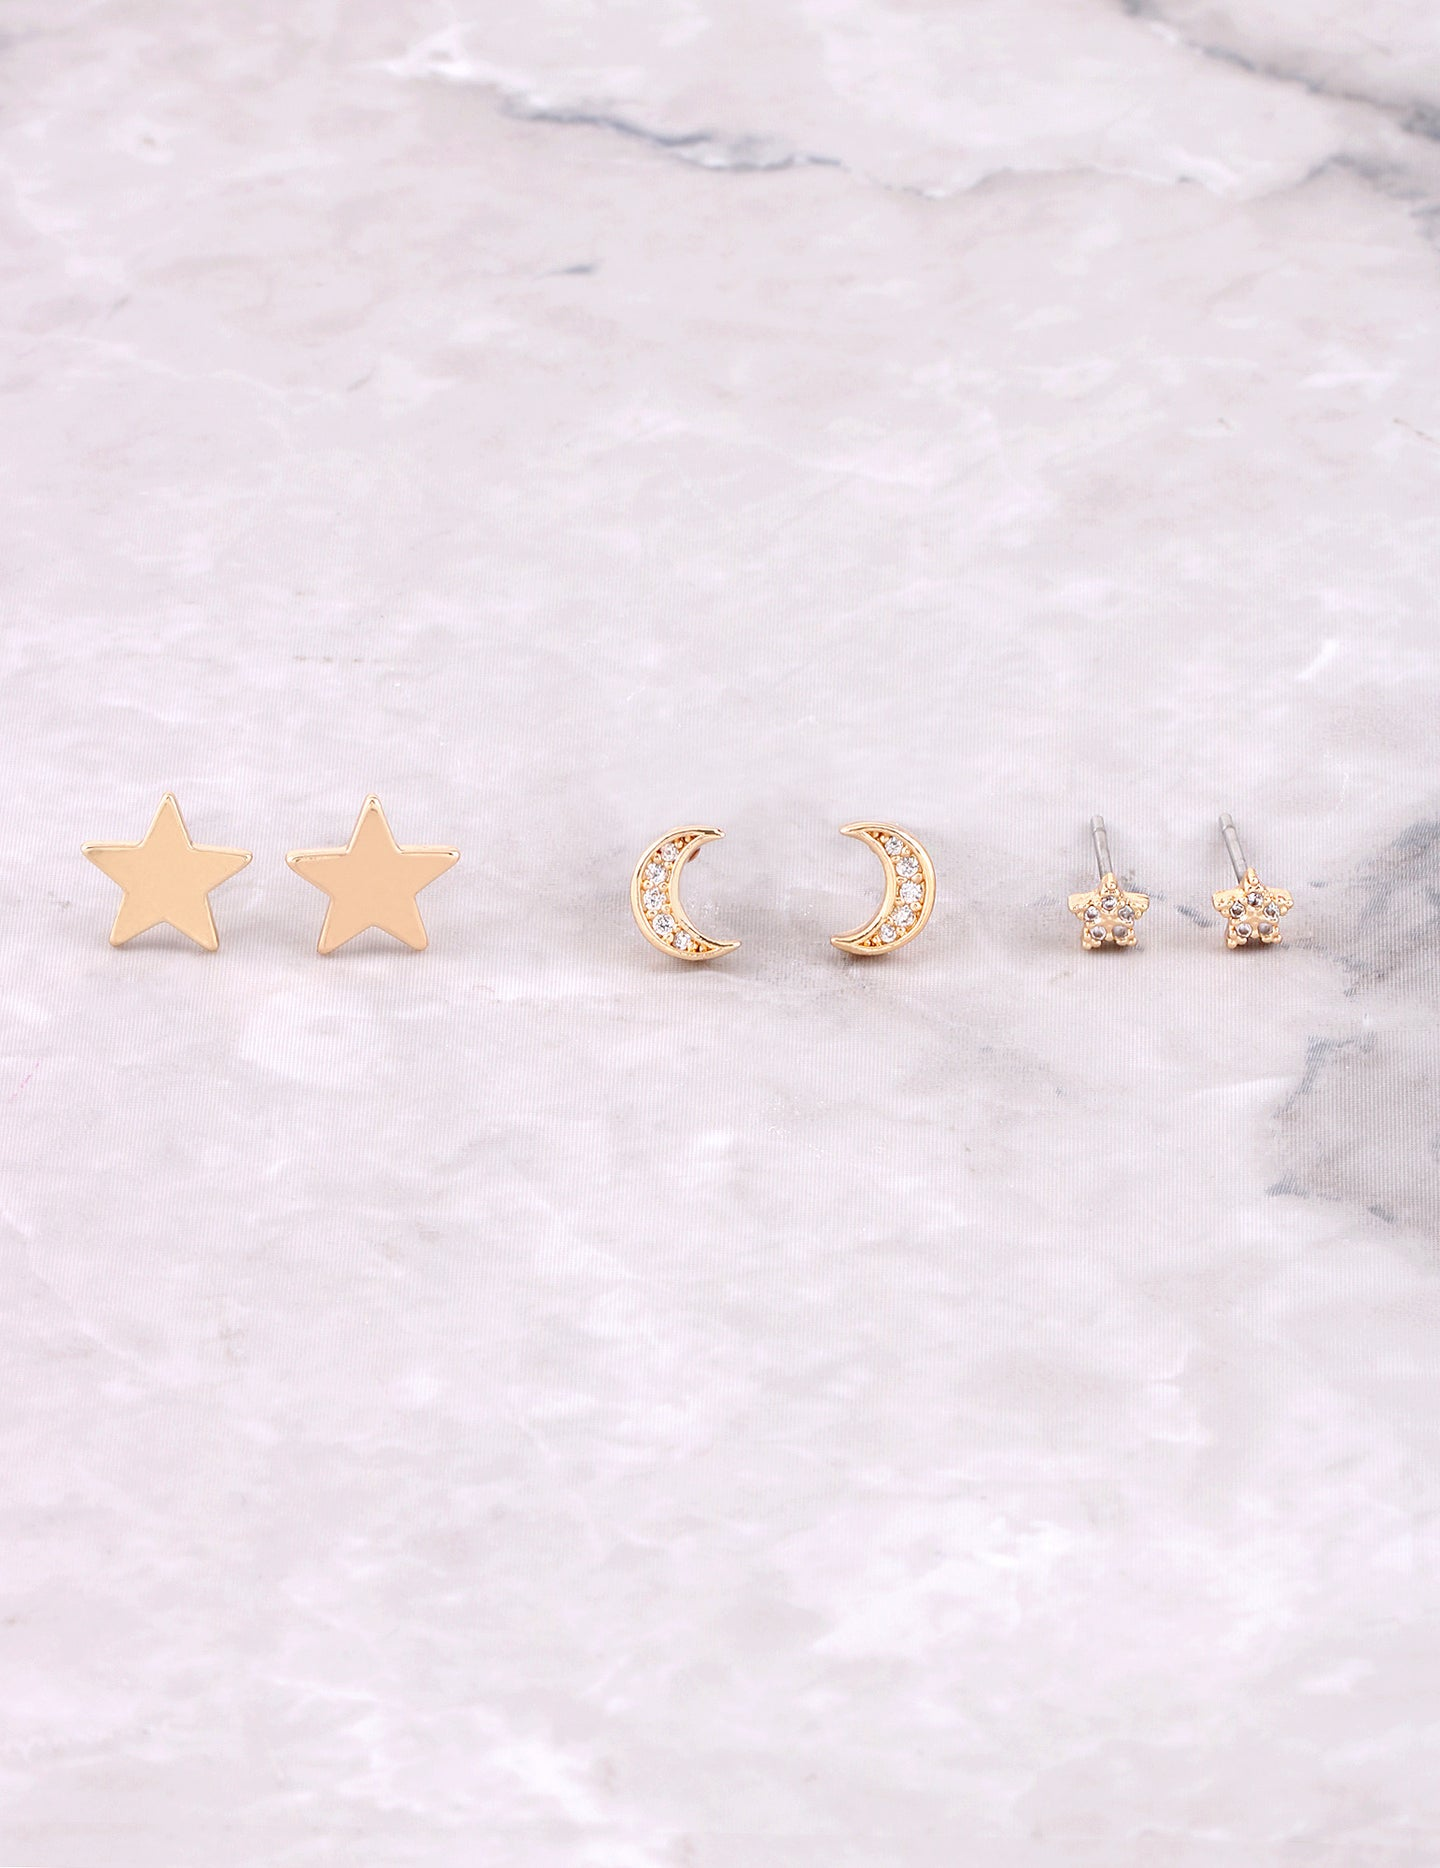 Starry Skies Earring Anarchy Street Gold